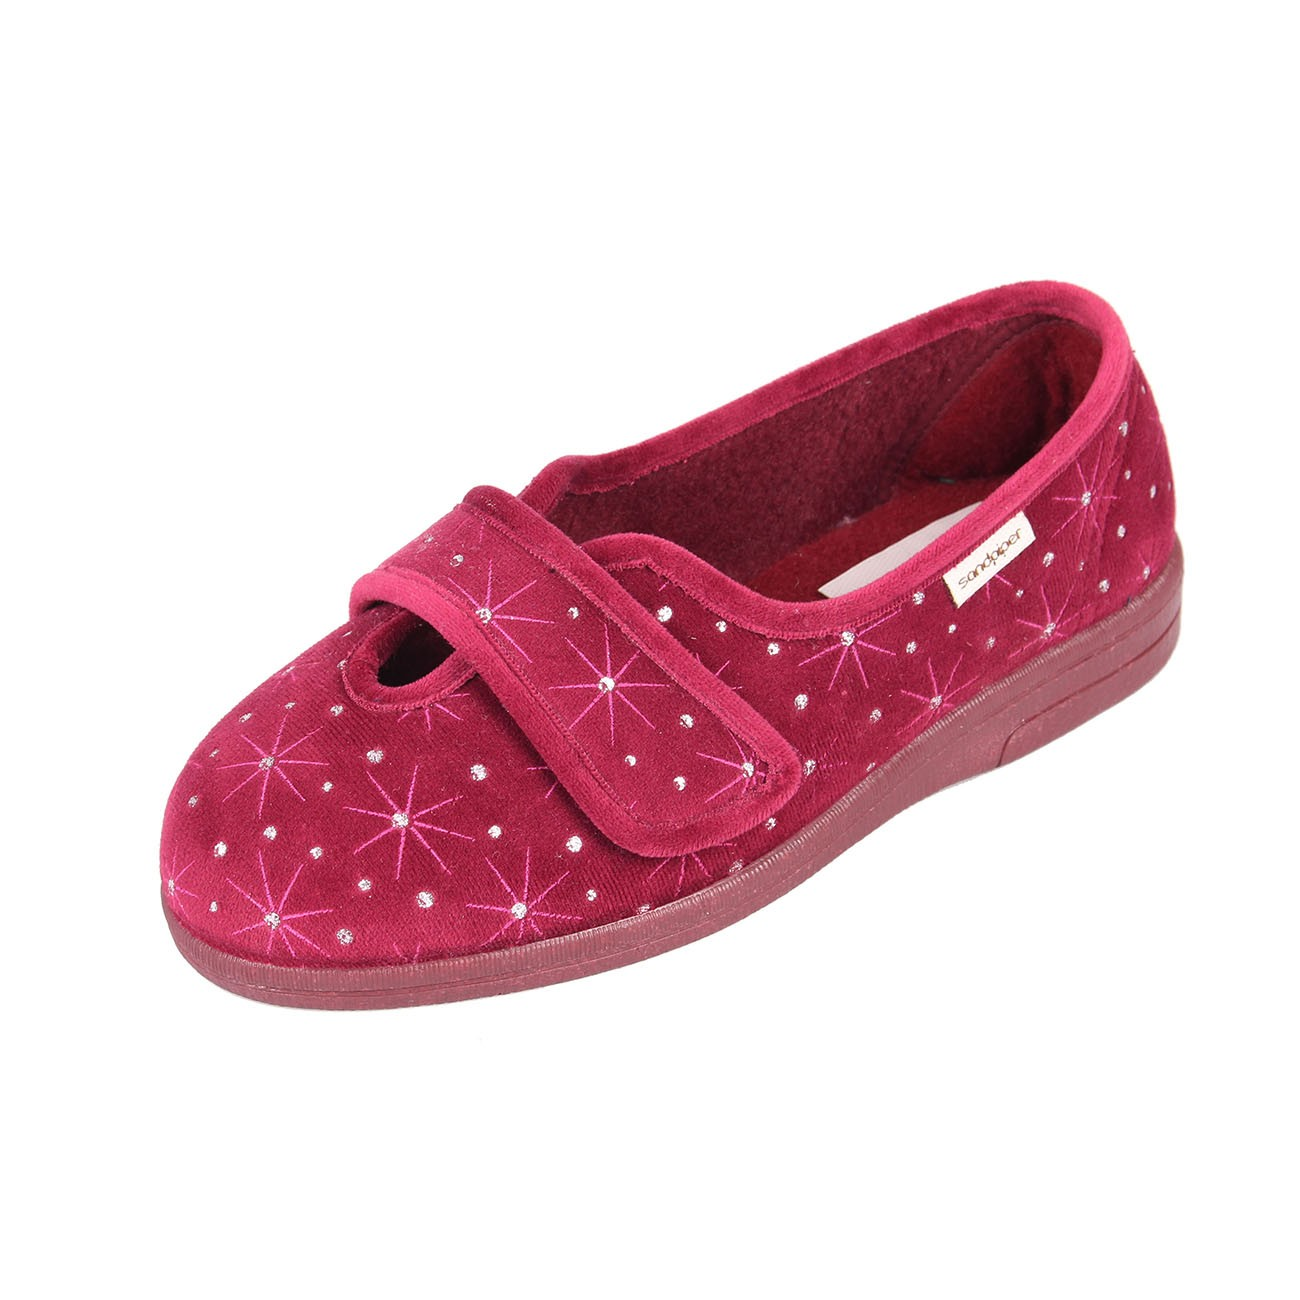 Sandpiper Sadie Ladies Extra Wide Slipper